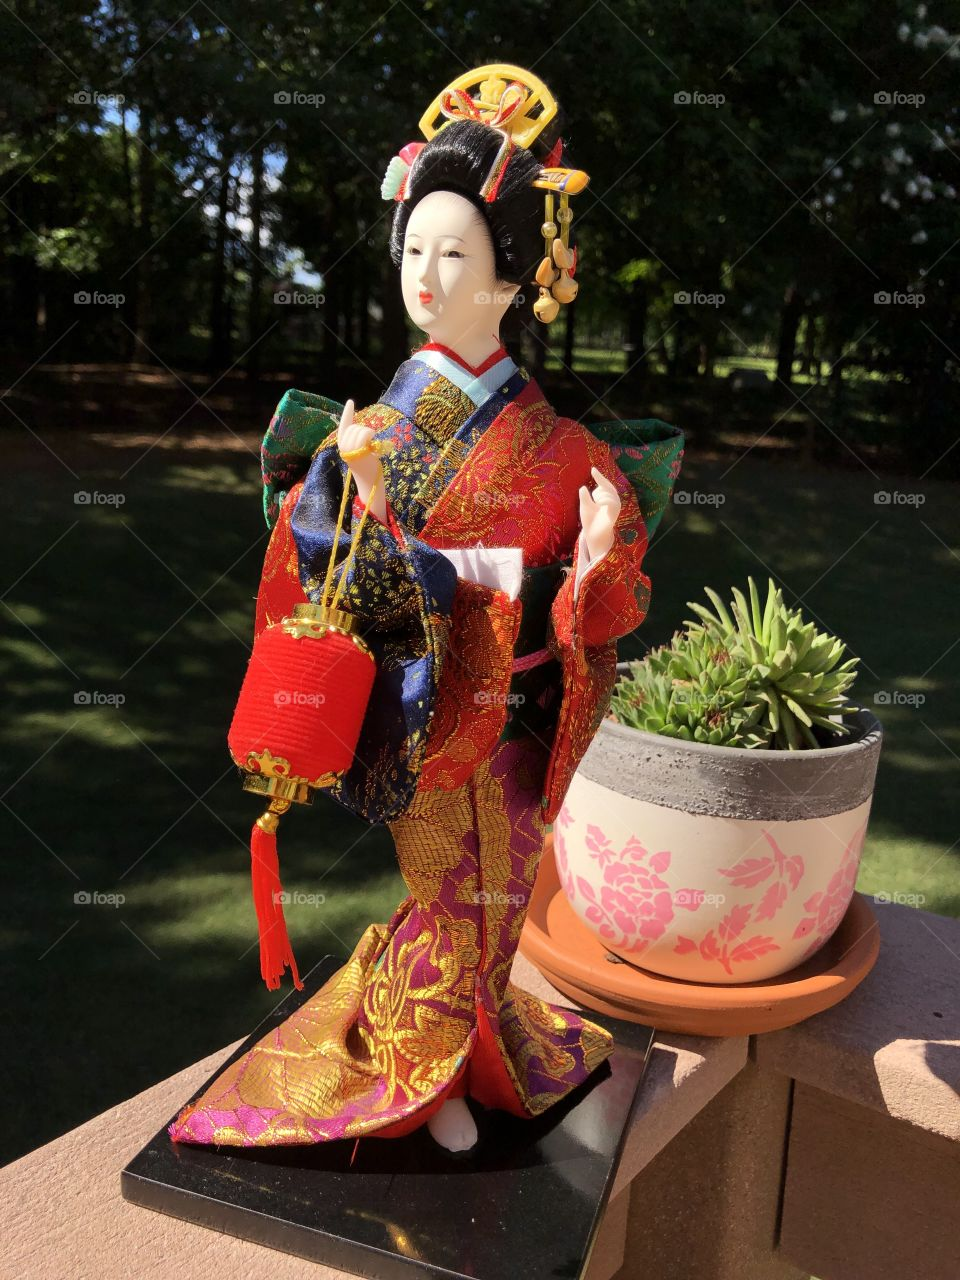 """A precious Christmas gift from my mother due to my love of the movie """"Memoirs of a Geisha"""".  A beautiful Geisha doll in a fashionable colorful silk kimono.  No editing just good photography."""